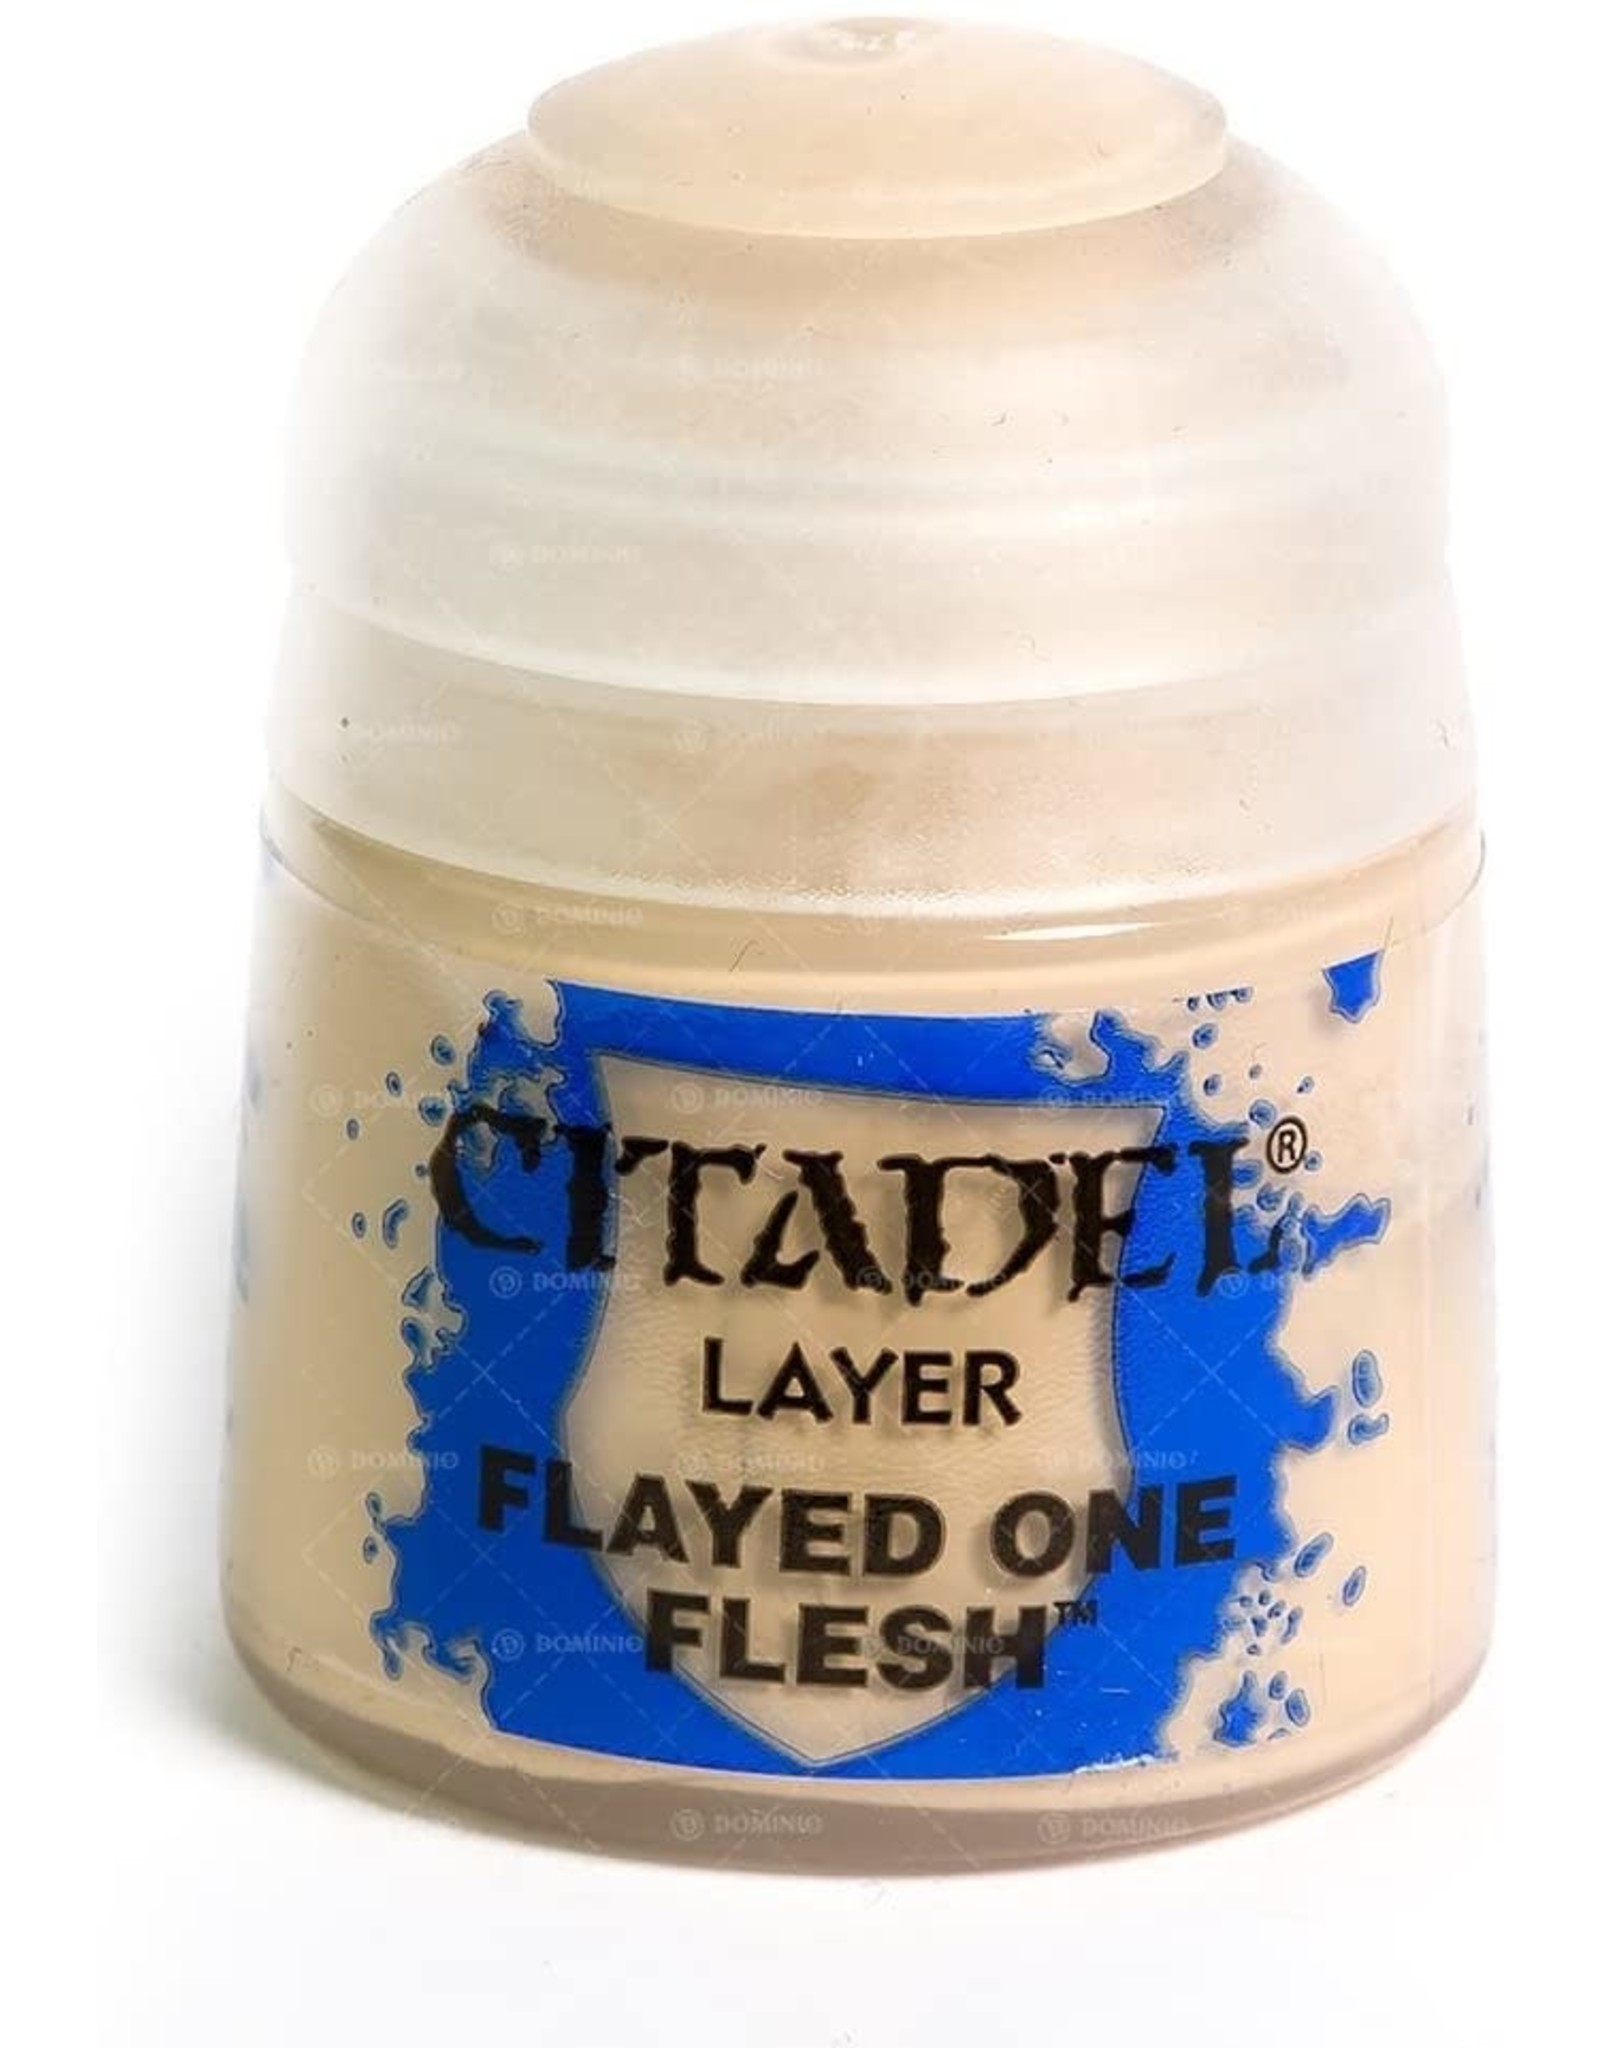 Games Workshop Citadel Paint: Flayed One Flesh 12ml